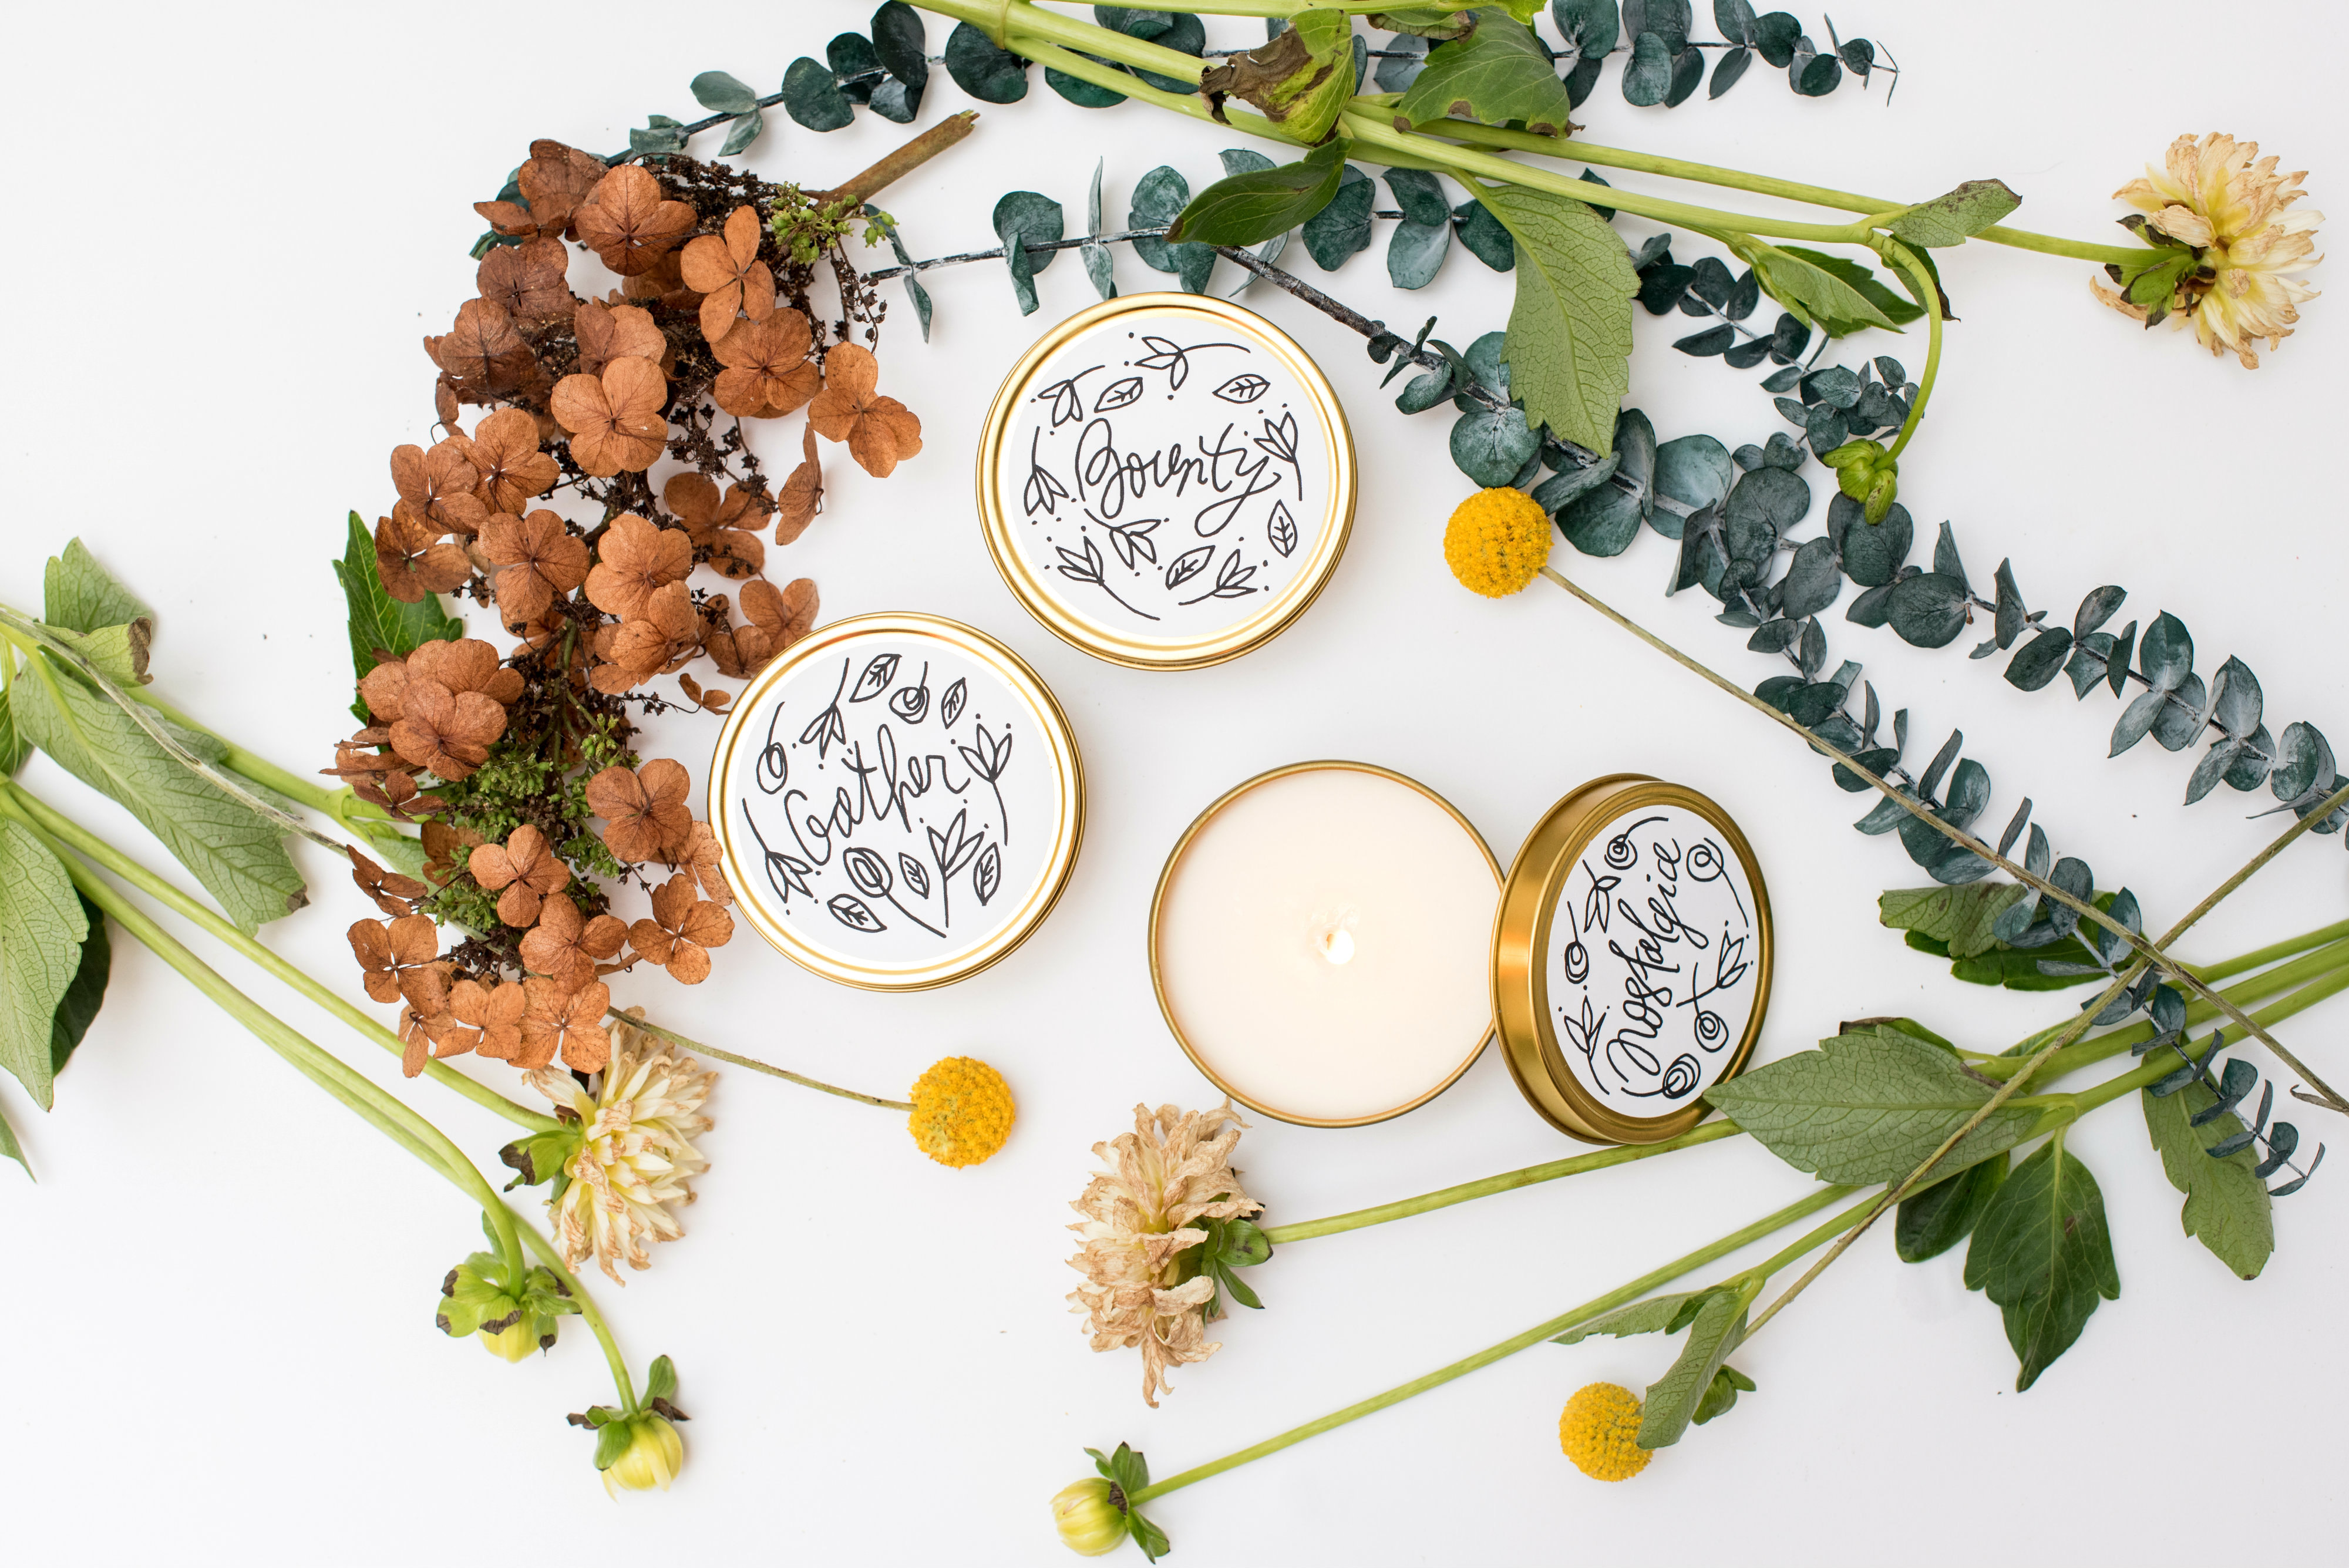 "We all know the holiday season can be a bit stressful (extended family visits, shopping and financial burdens), which is why I like to stock up on soothing scents and candles galore this time of year. And nothing gets me faster than pretty packaging and a product that is environmentally responsible. Artist Amina Ahmad knocks it out of the park on both fronts with her all-natural soy candles ""Inspired by nature and rooted in mindfulness.""  (Image: Courtesy Handmadehabitat)"